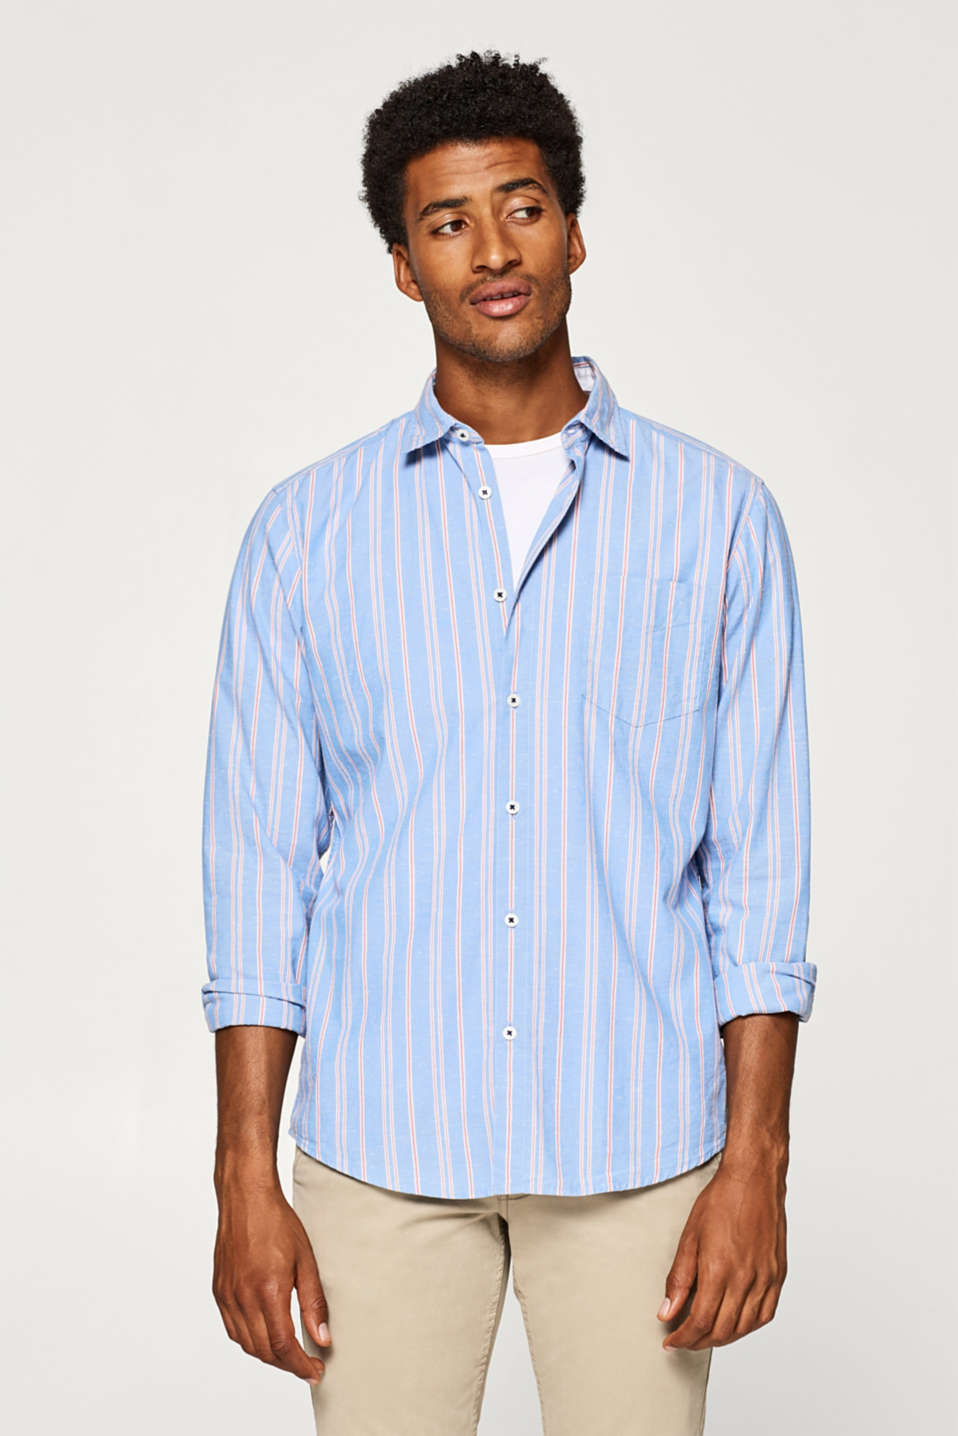 Esprit - Shirt with vertical stripes and a dimpled texture